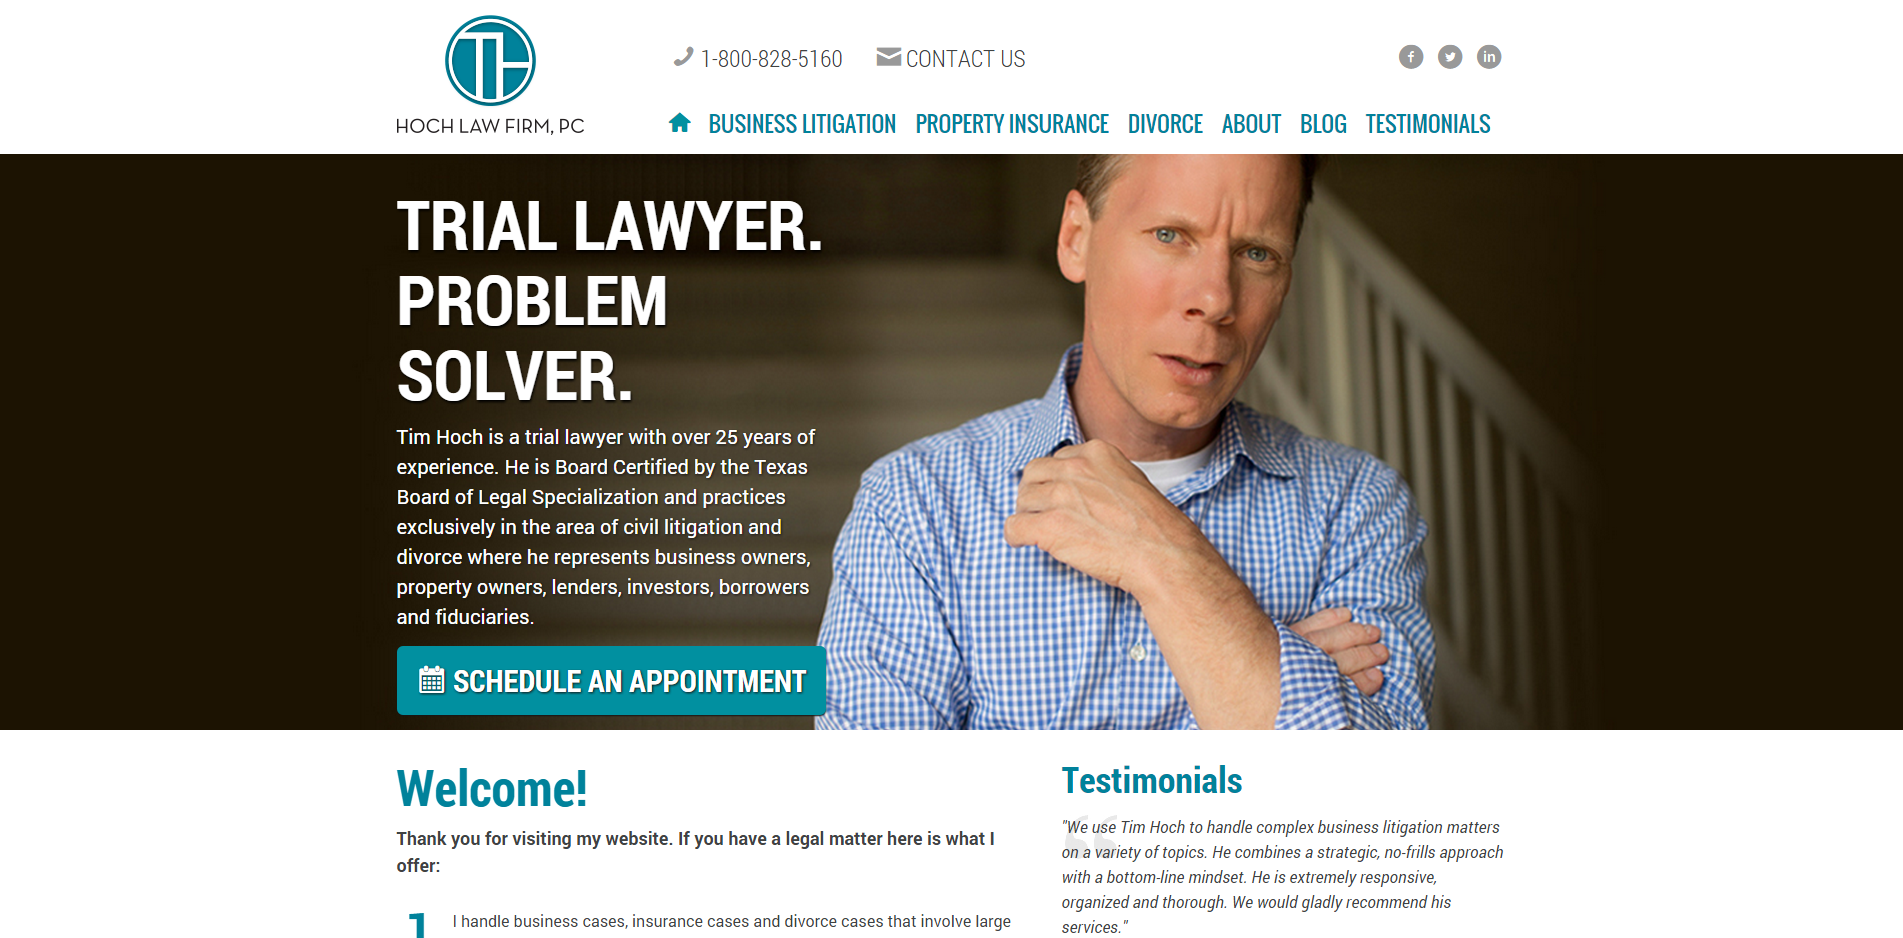 Hoch Law Firm Pc Tim Hoch Is A Trial Lawyer Who Specializes In